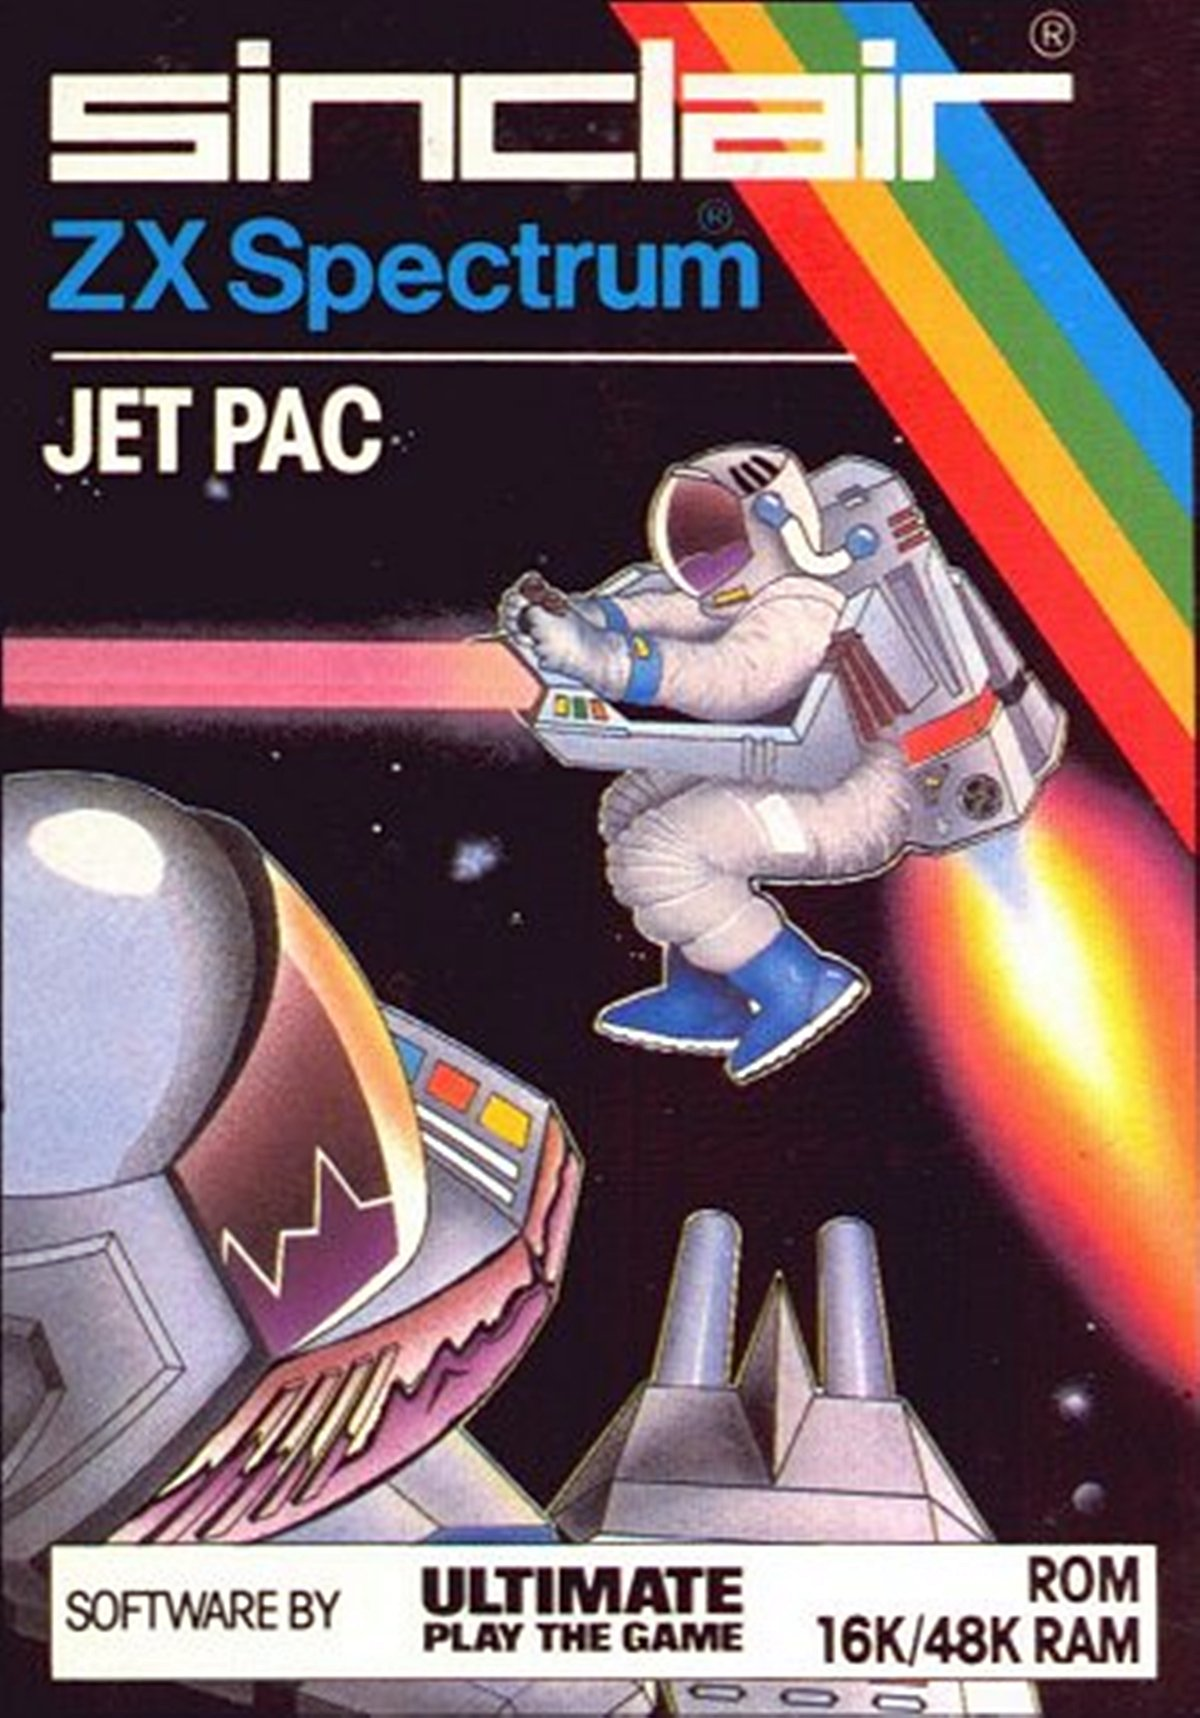 4 26 10 ZX Spectrum Games That Sell For Big Money On Ebay